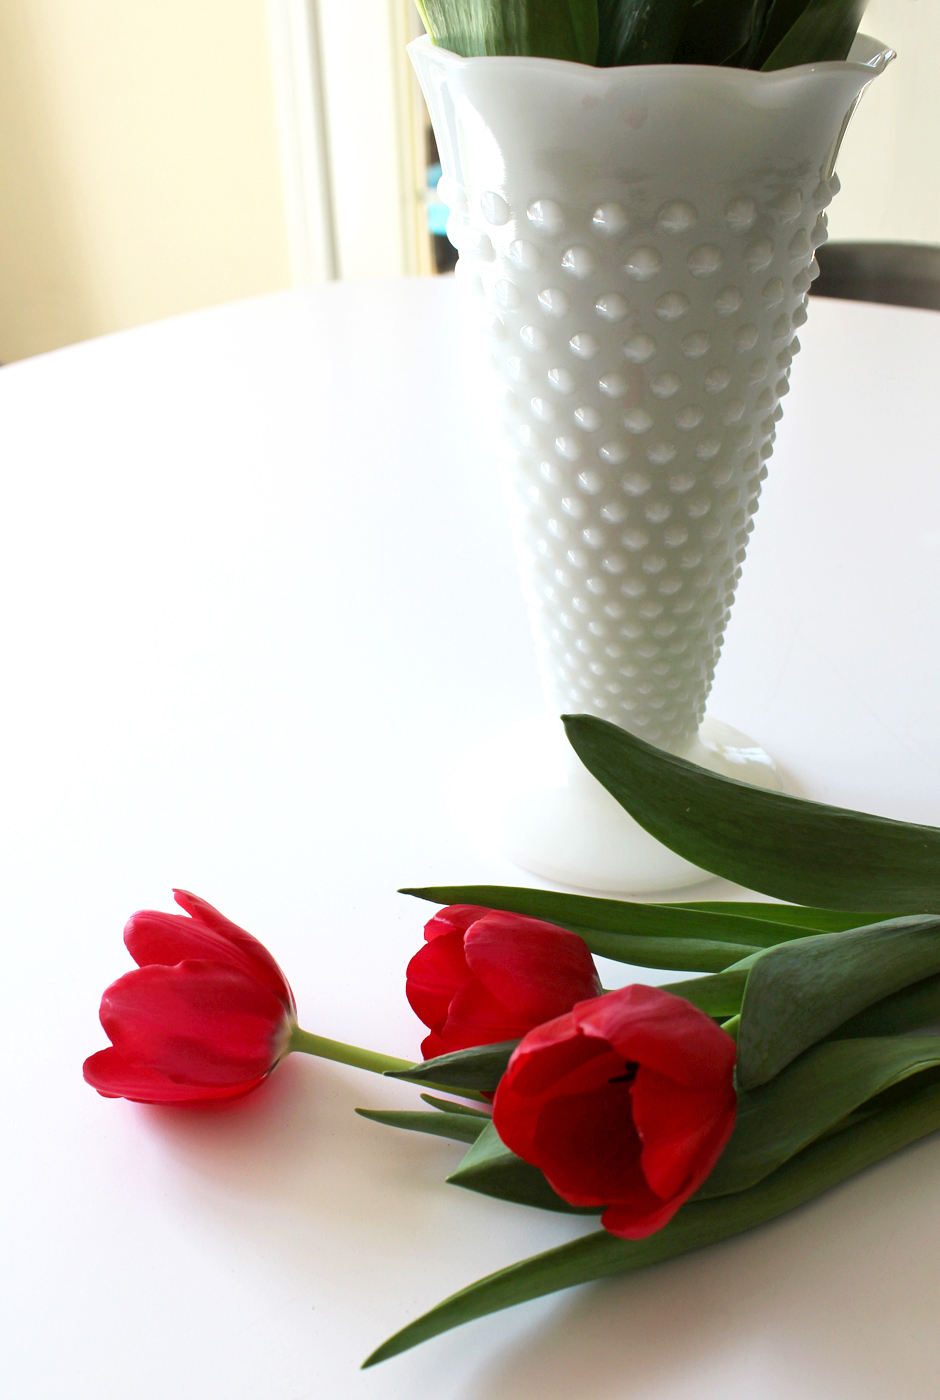 Introduce a milk glass vase to fresh greenery